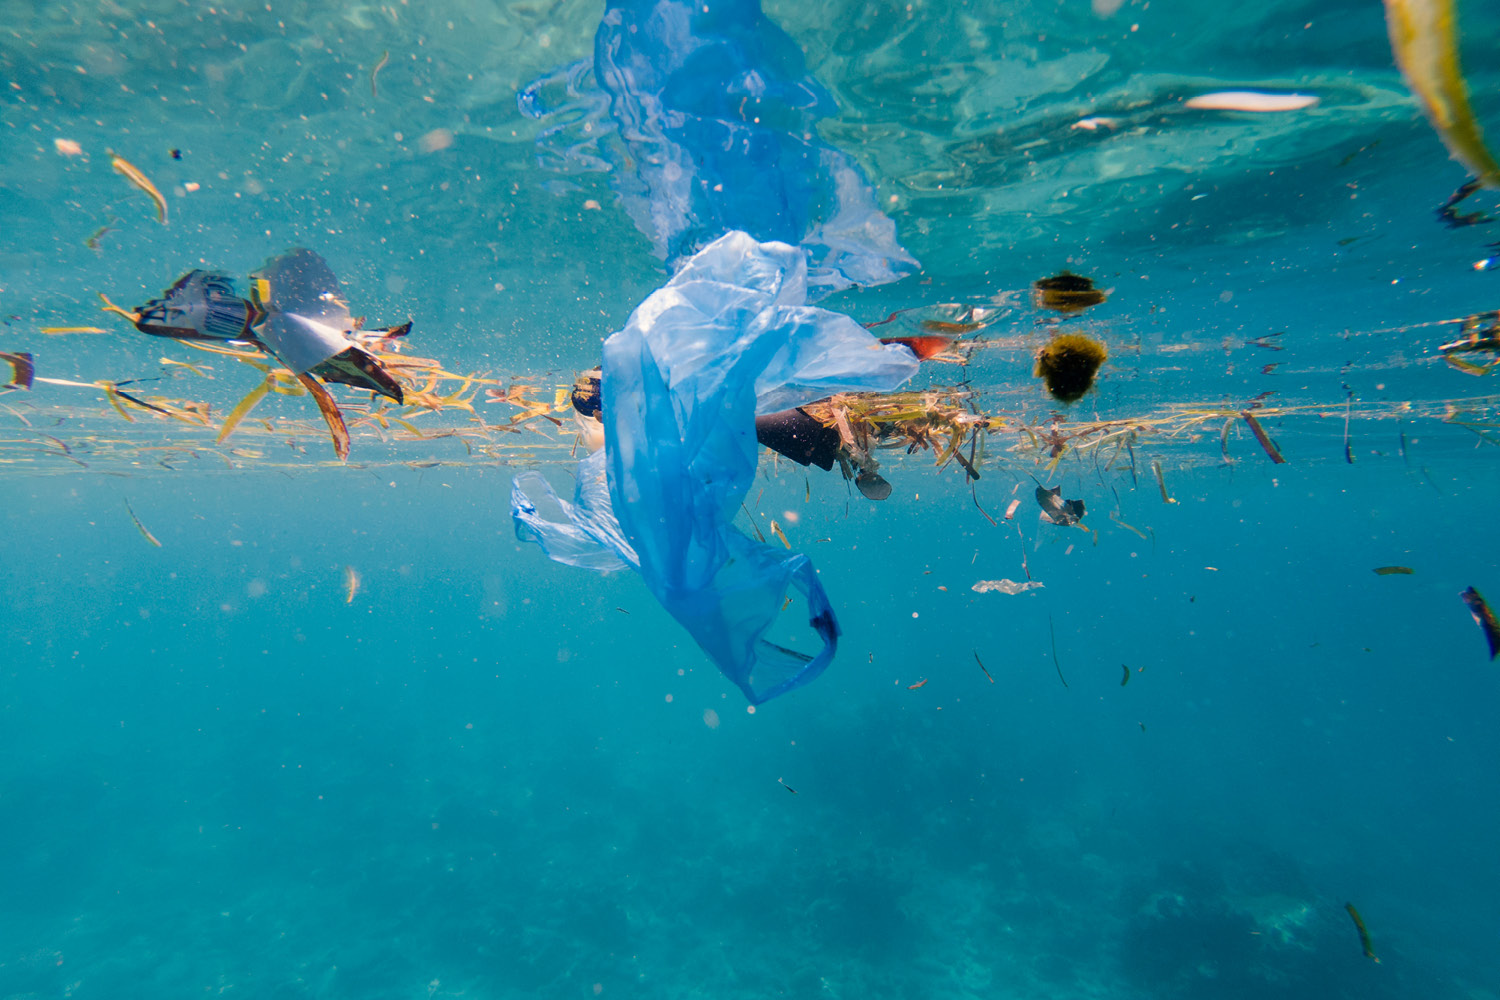 Plastic pollution on marine environment